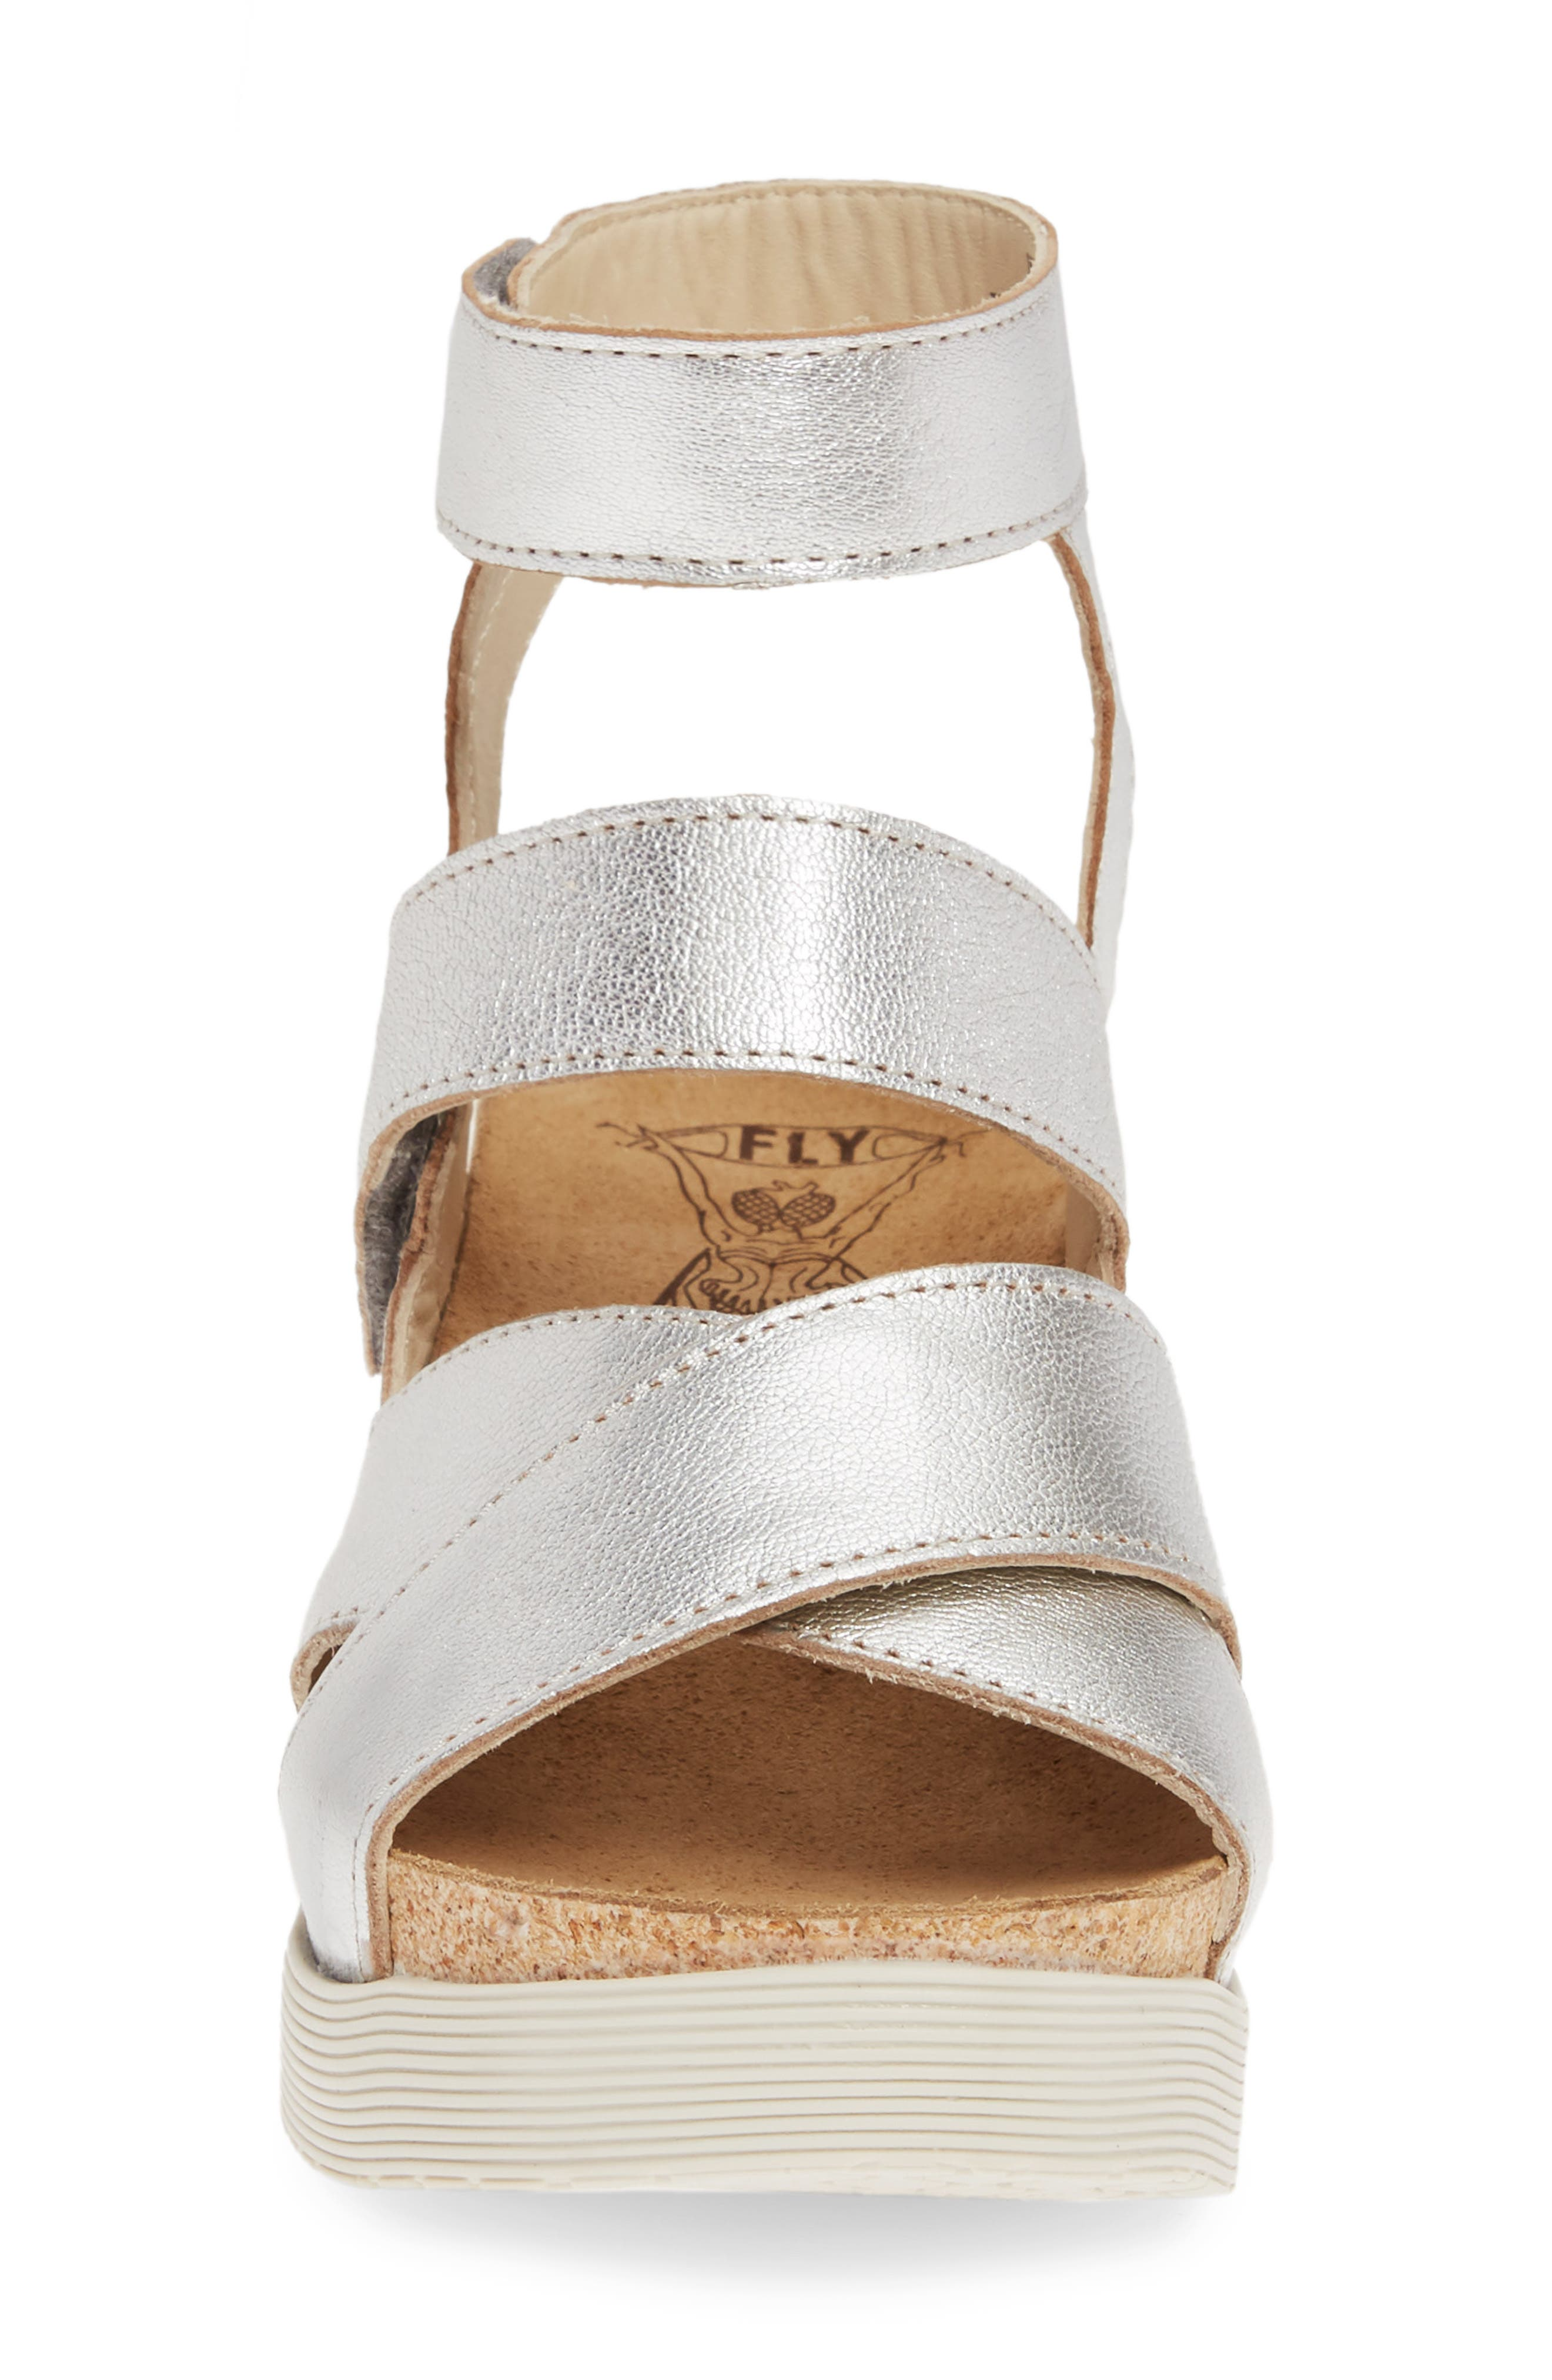 FLY LONDON, 'Wege' Leather Sandal, Alternate thumbnail 4, color, SILVER LEATHER